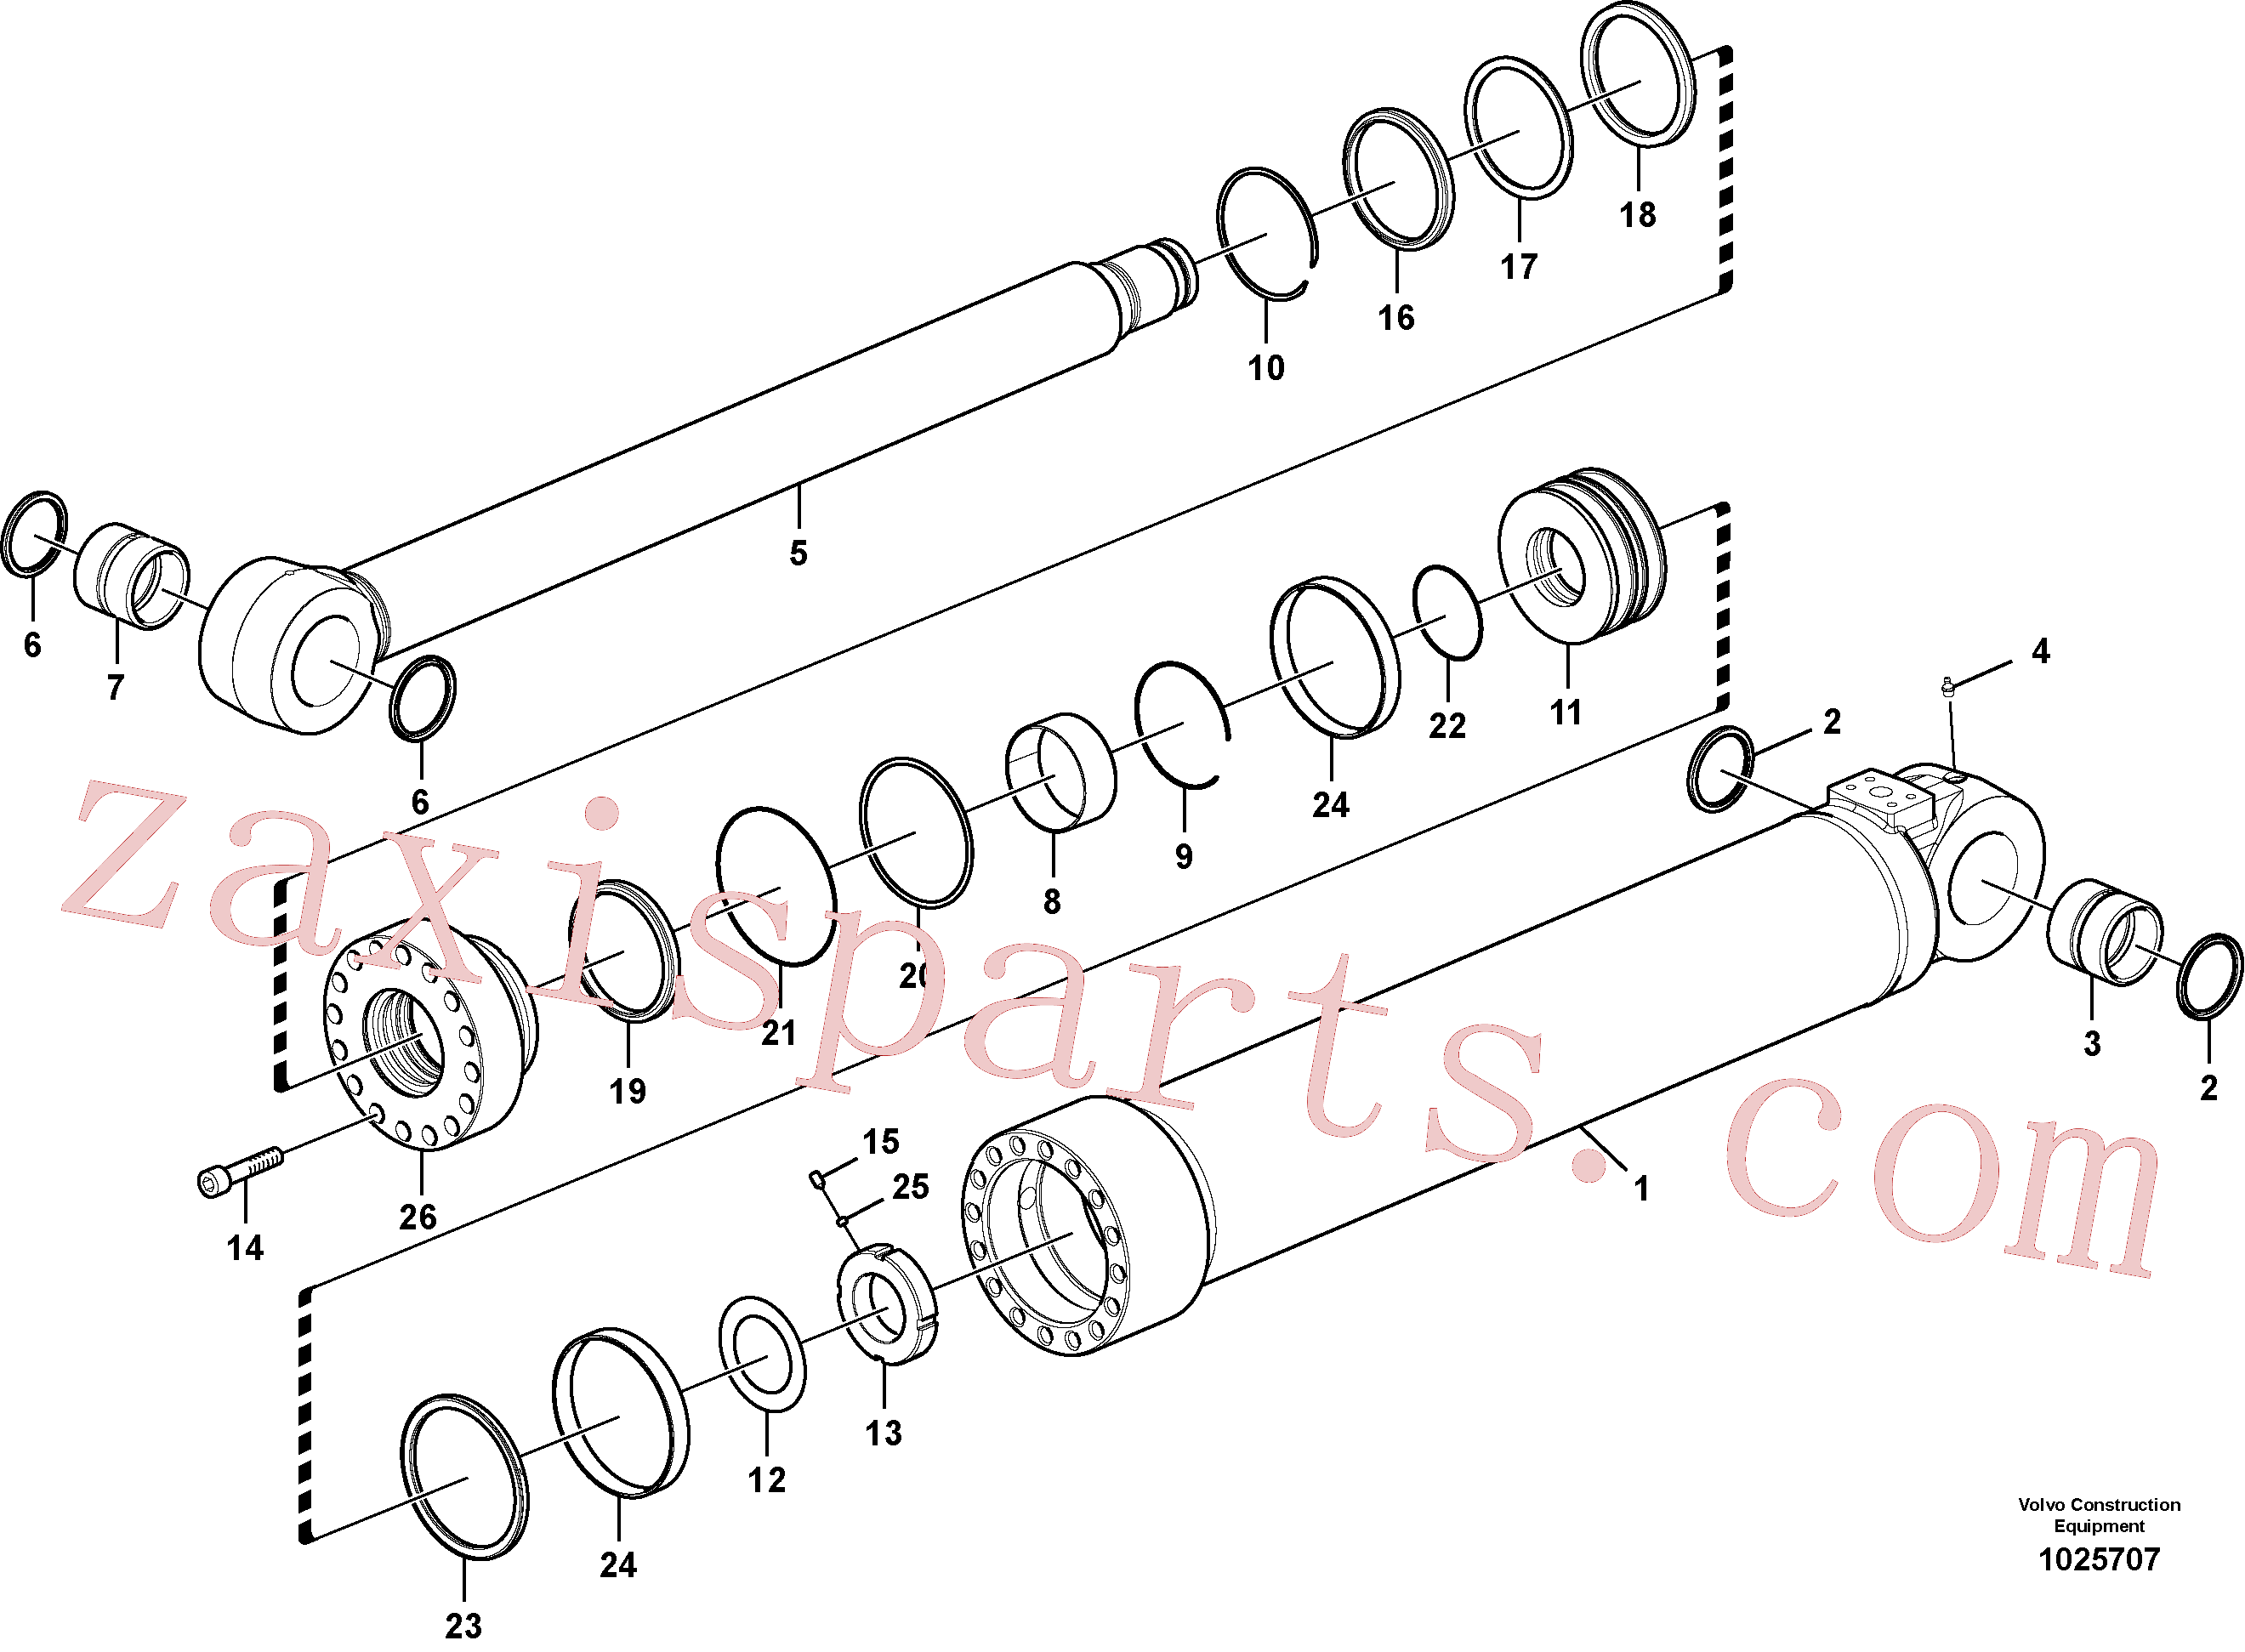 SA9563-20900 for Volvo Boom cylinder, adjustable 1st, Boom cylinder, adjustable 2nd(1025707 assembly)